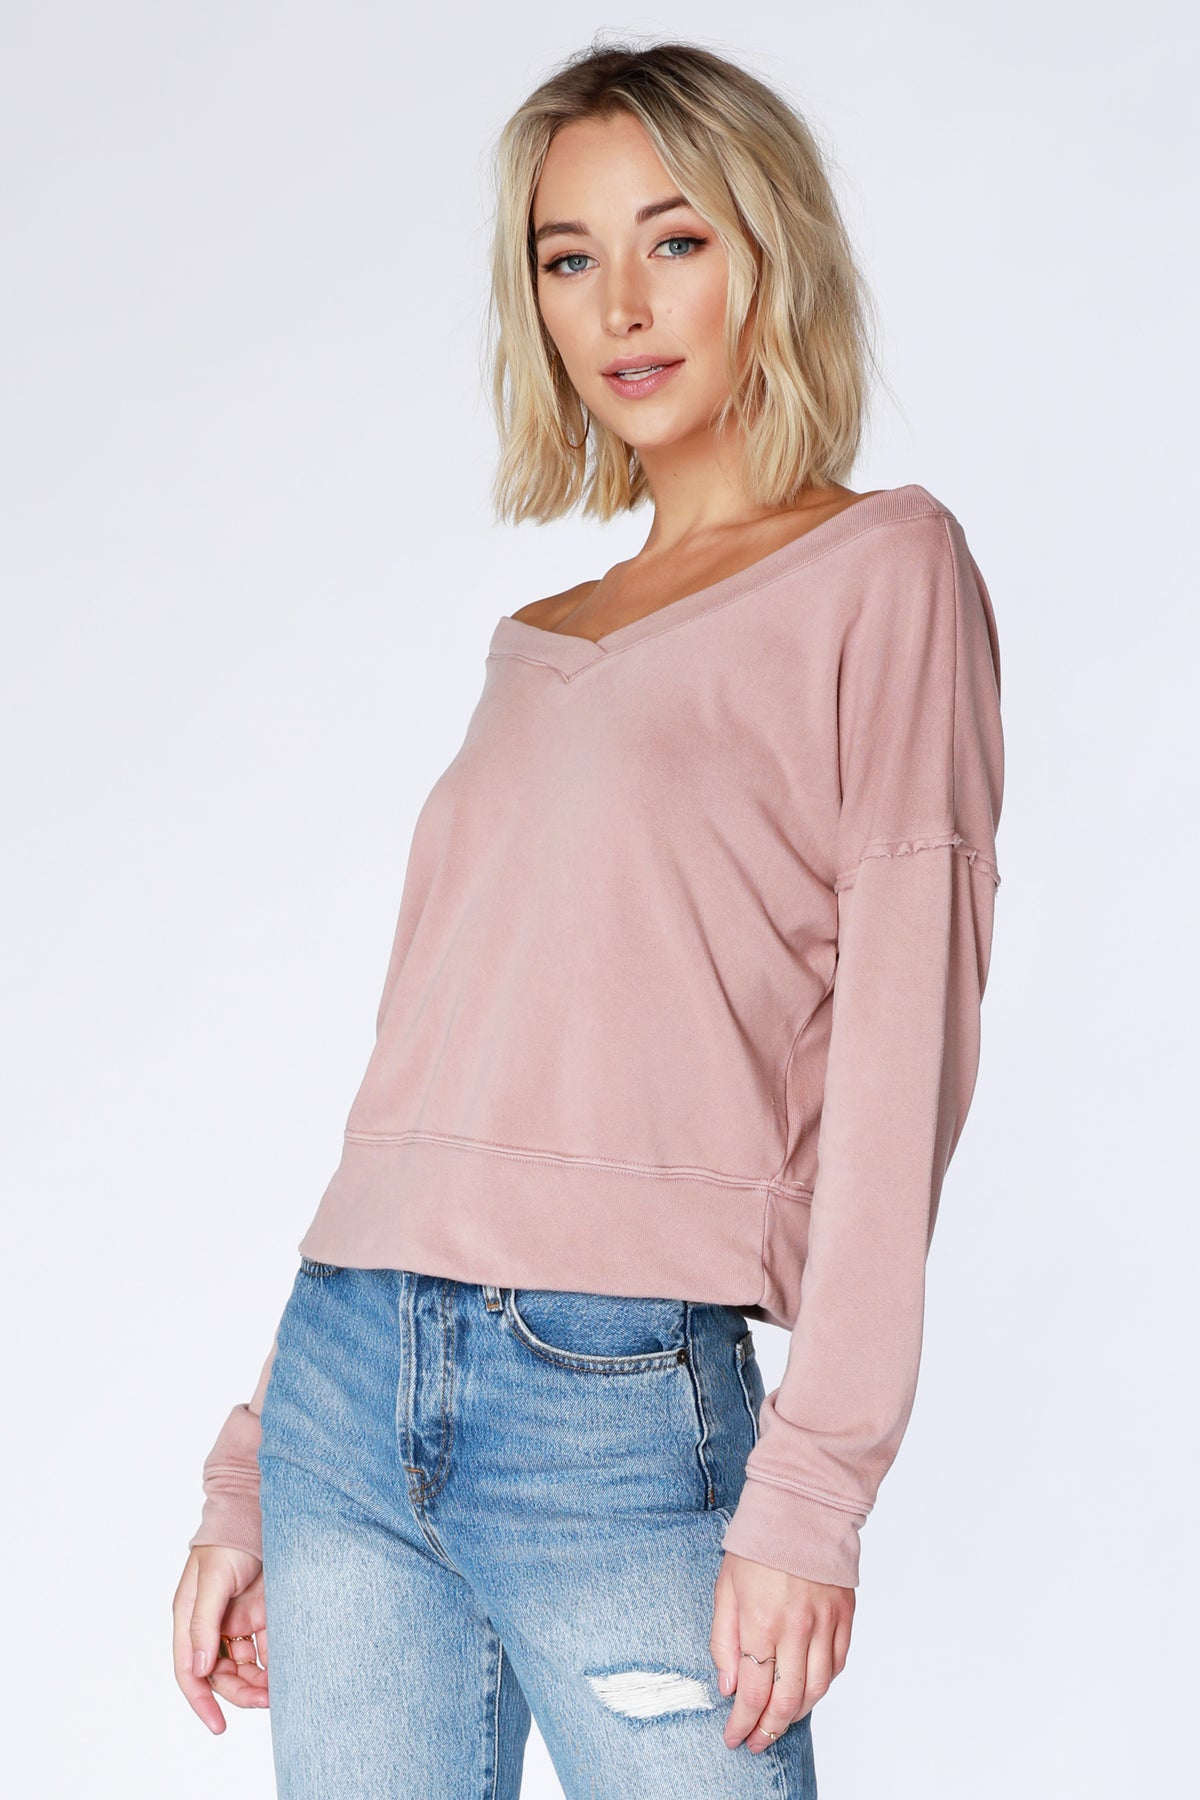 Boat Neck Cropped Sweatshirt - bobi Los Angeles